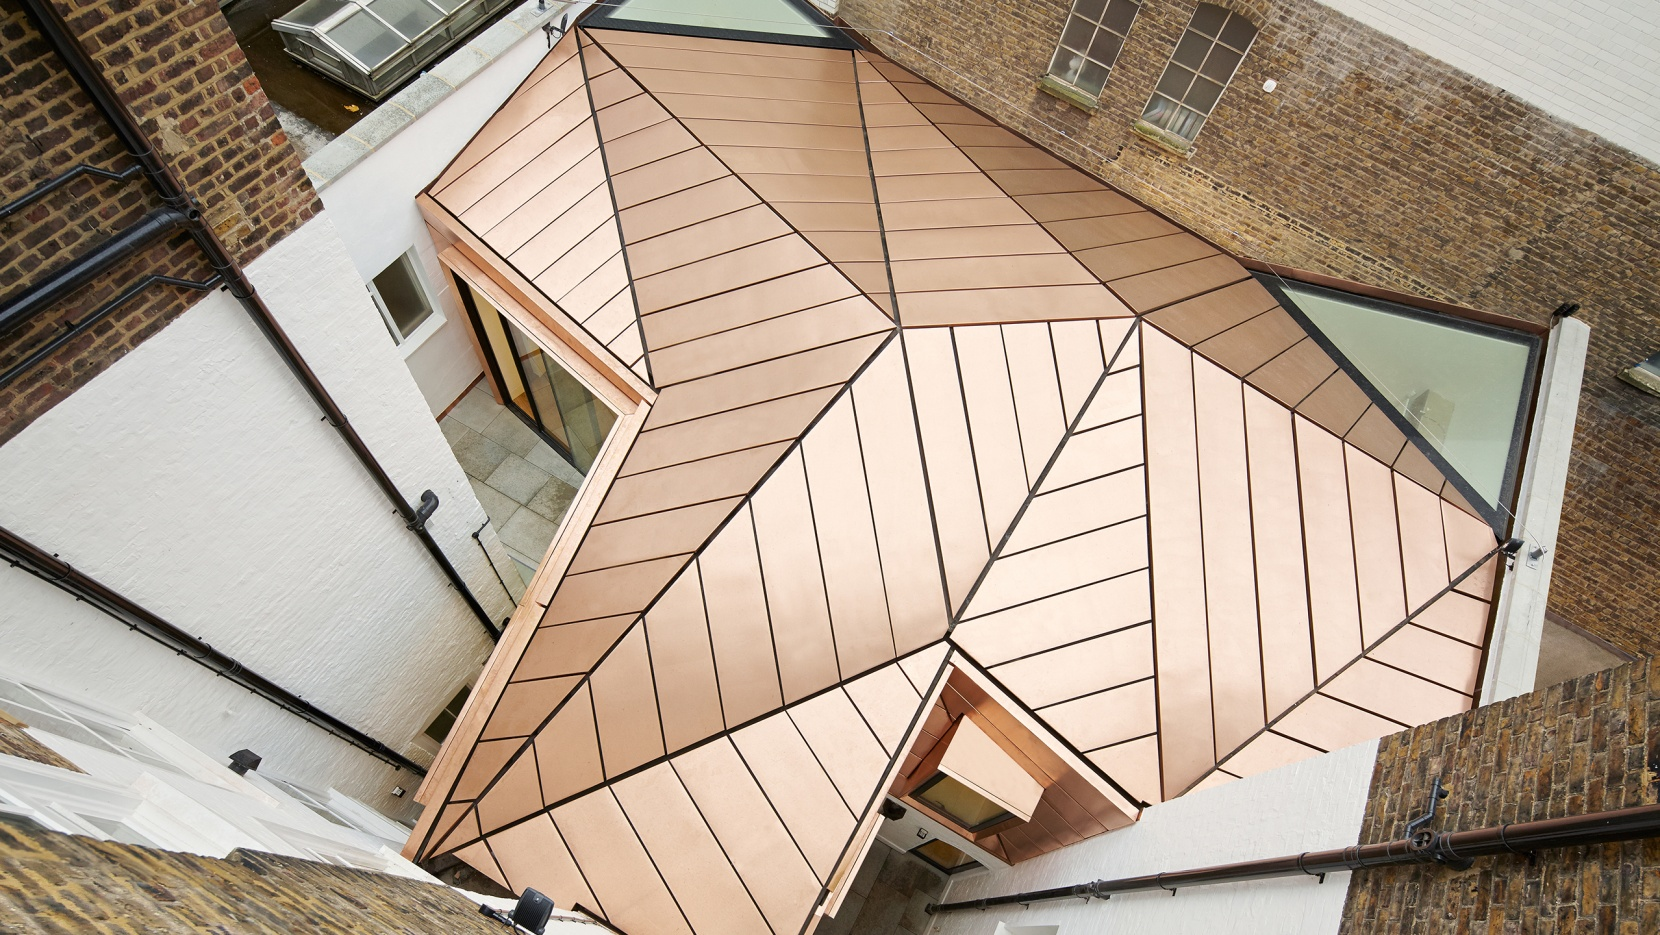 When A Copper Roof Steals The Show In A Working Environment... | Yatzer